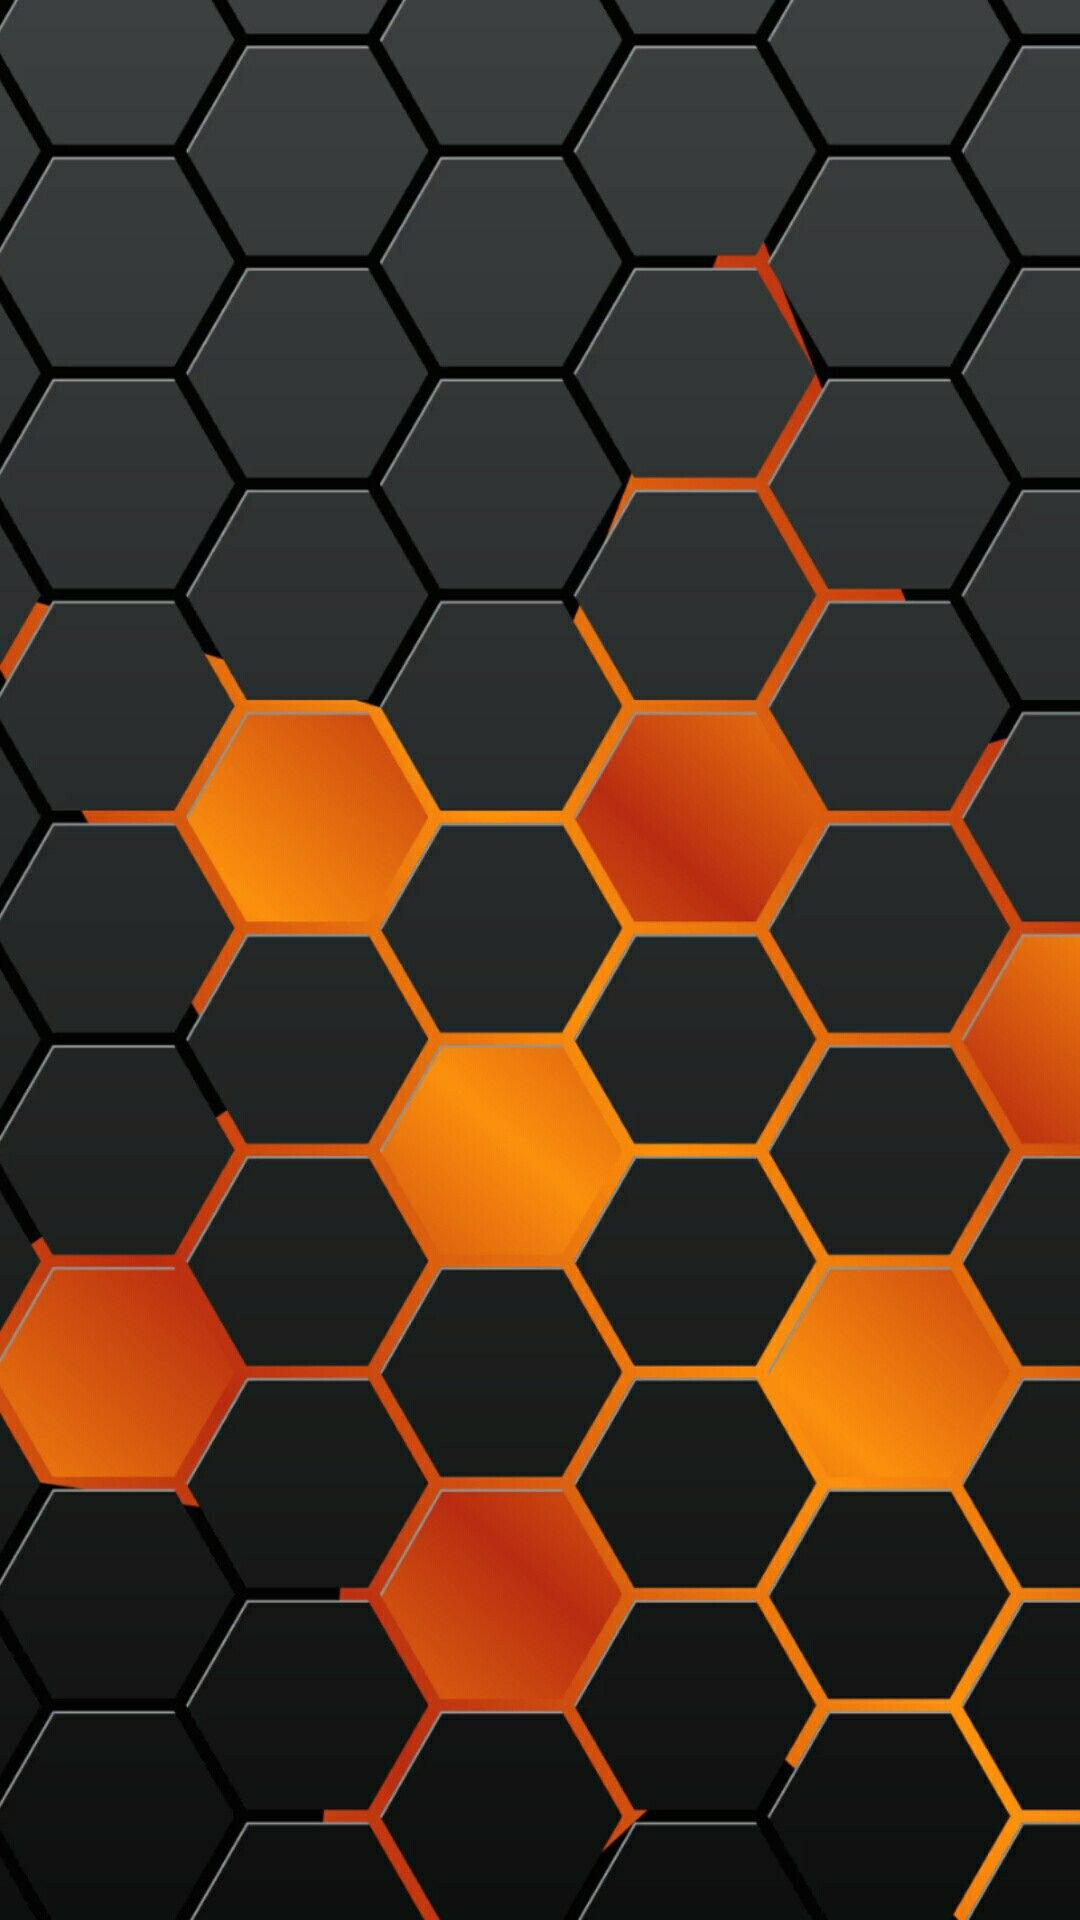 iPhone wallpaper background orange black octagon pattern iphone 7 1080x1920